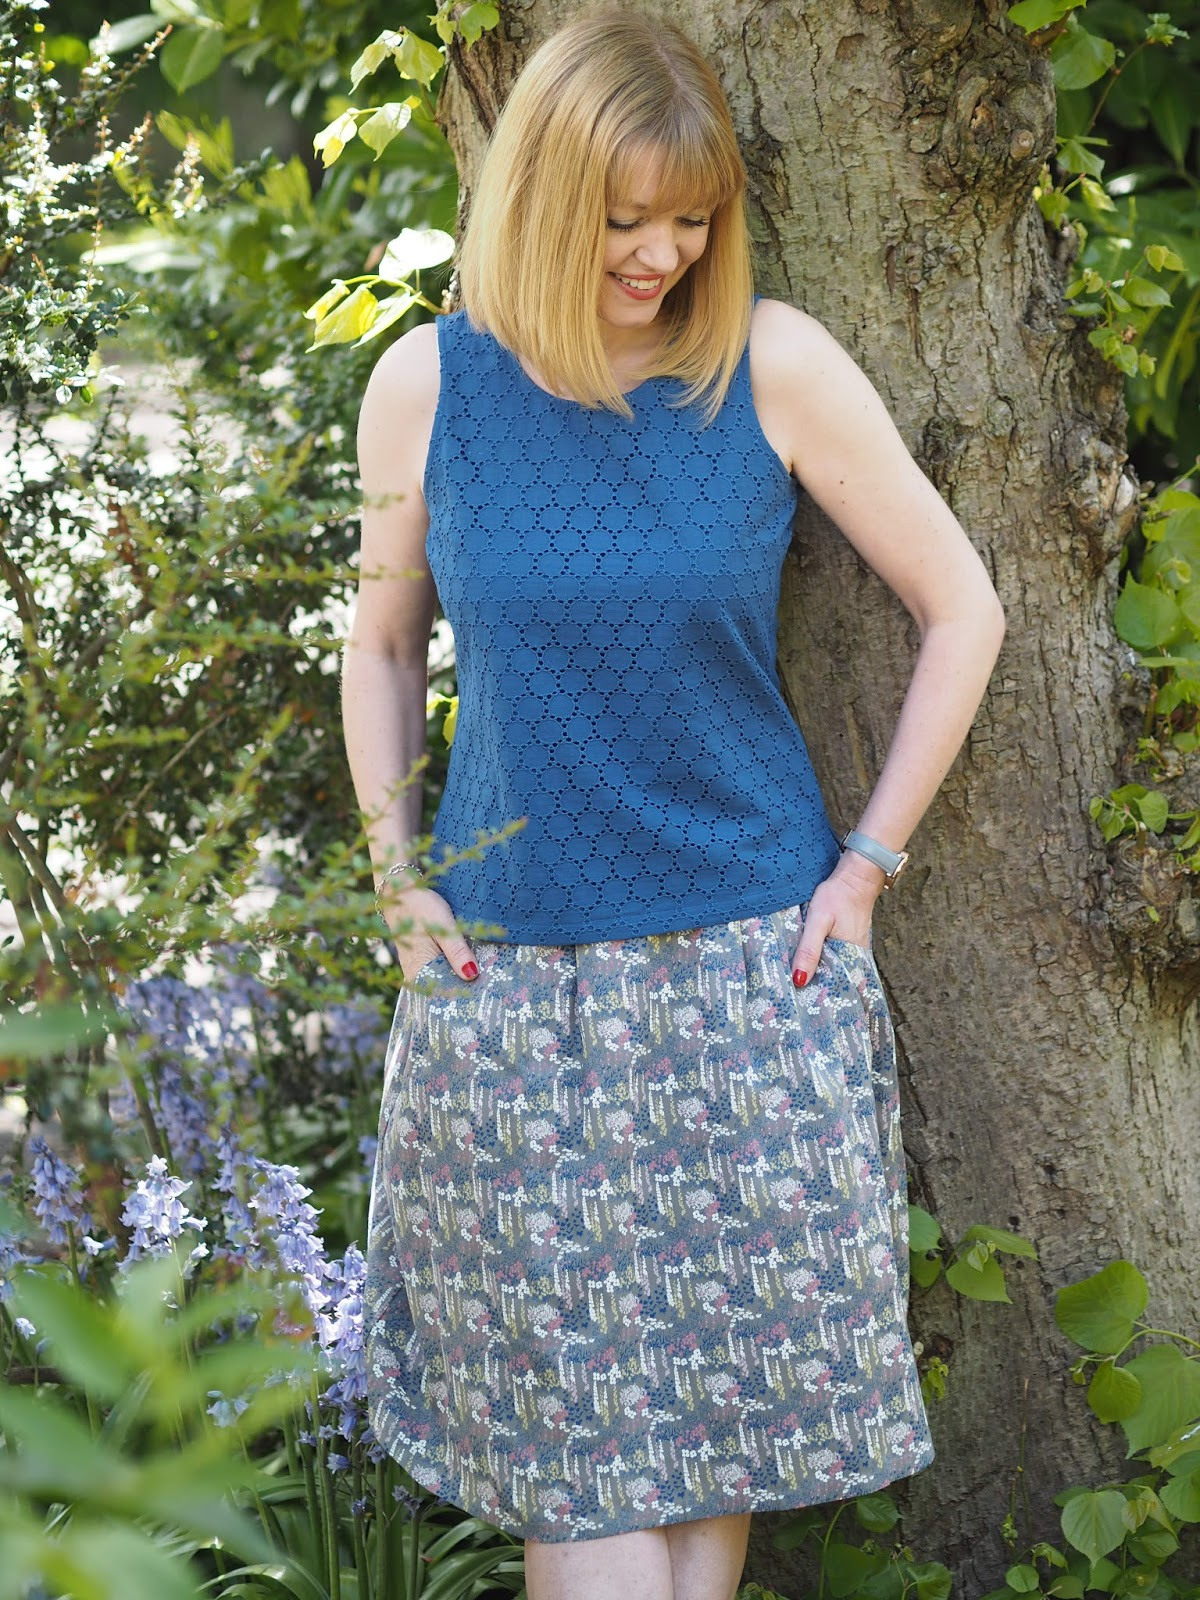 What-Lizzy-Loves- blue-broderie-shell-top-floral-skirt-pockets